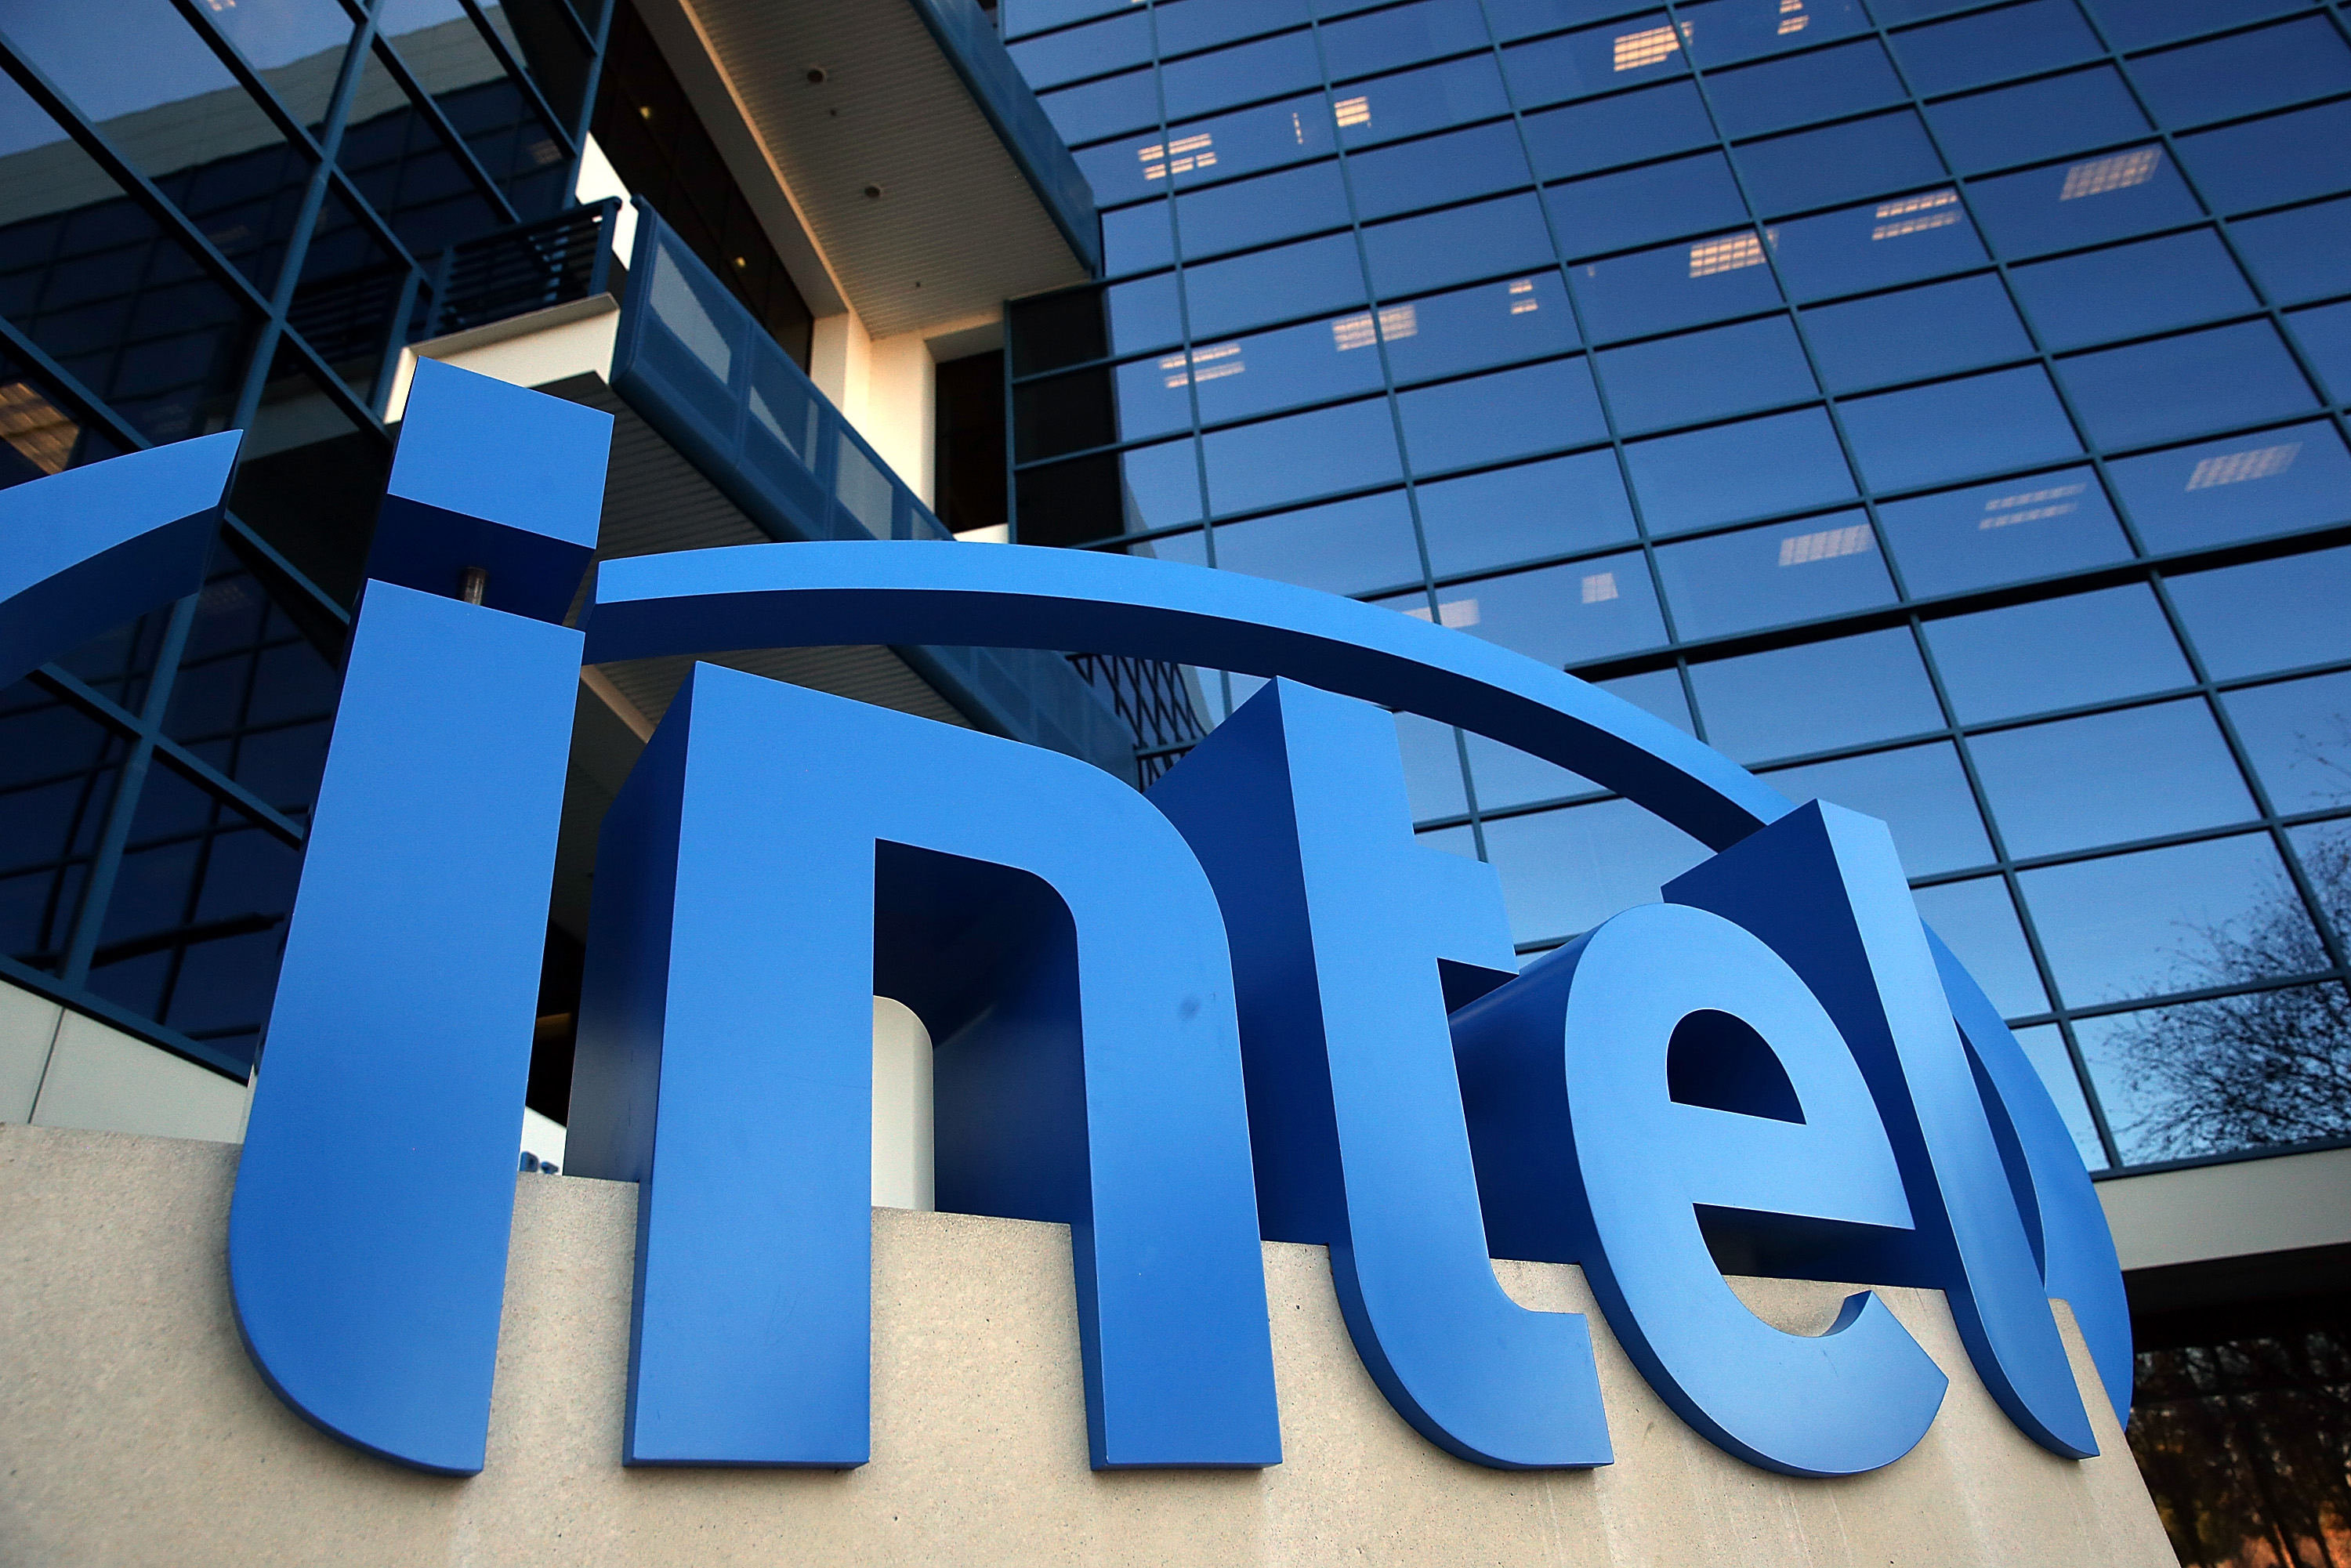 July 18, 1968: Tech Giant Intel Is Founded